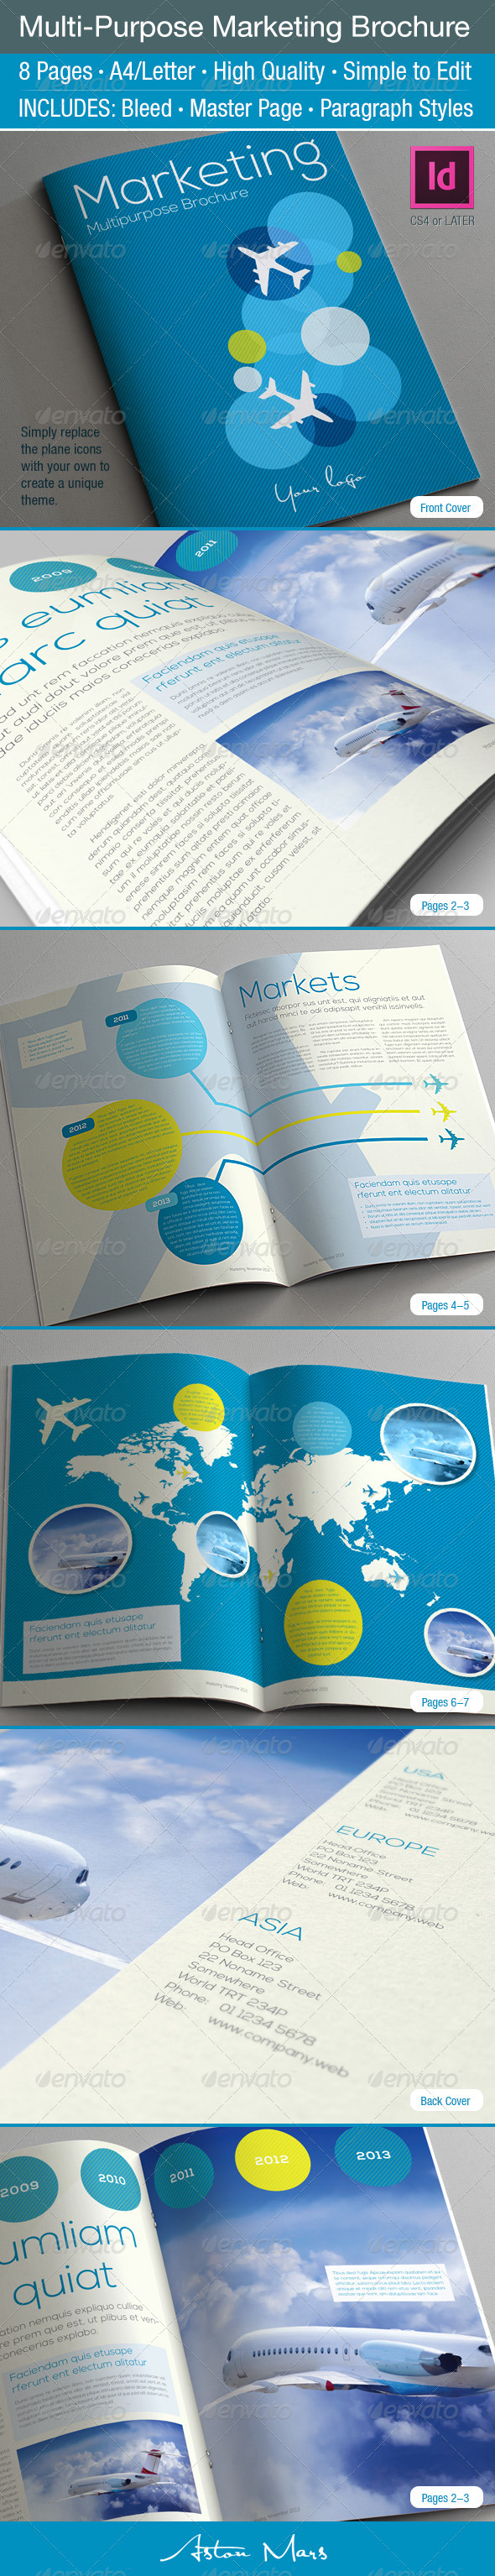 GraphicRiver Multi-Purpose Marketing Brochure 3726707